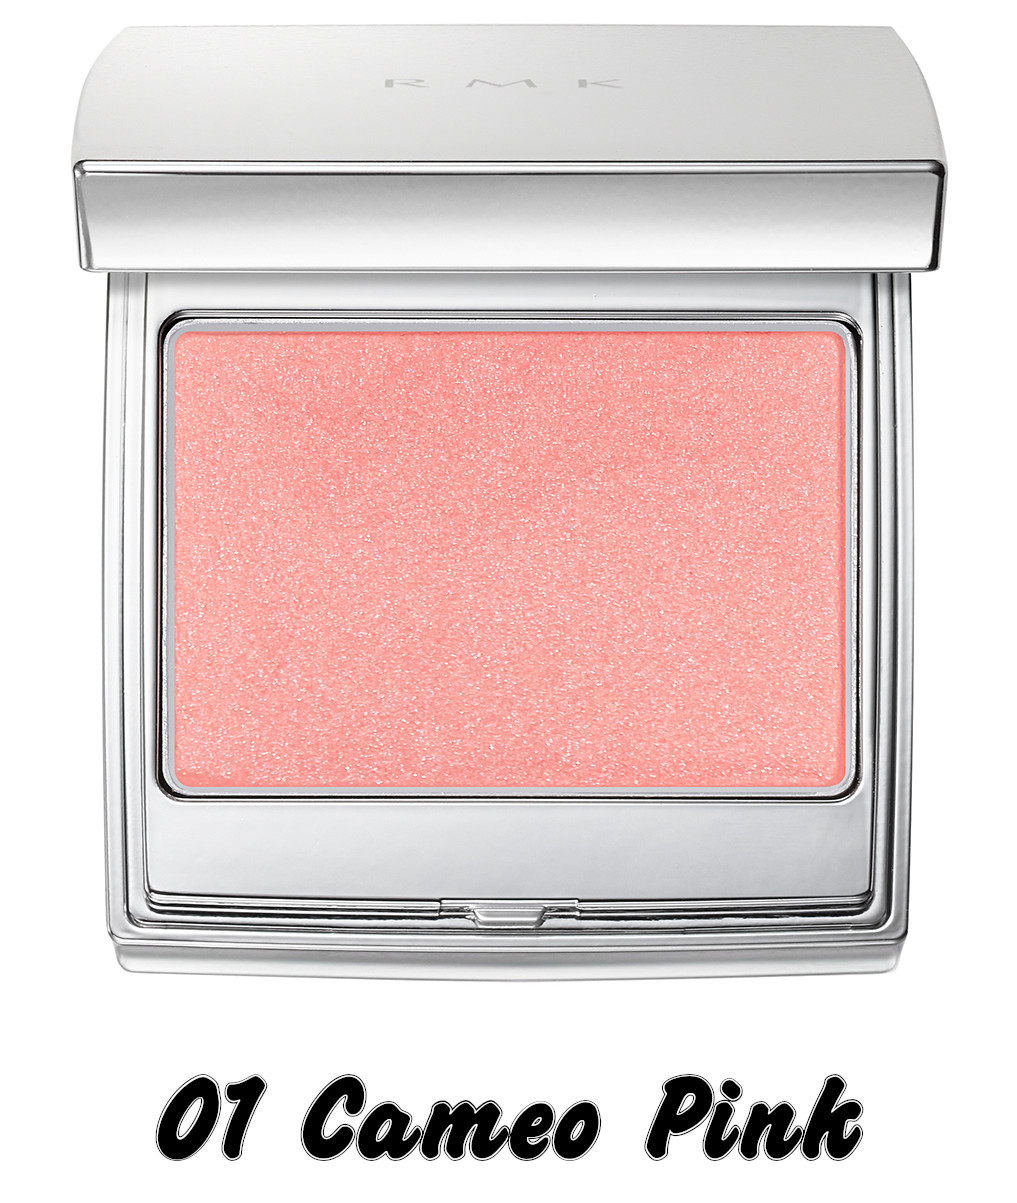 RMK The Now Now Summer 2021 Collection The Now Now Blush 01 Cameo Pink